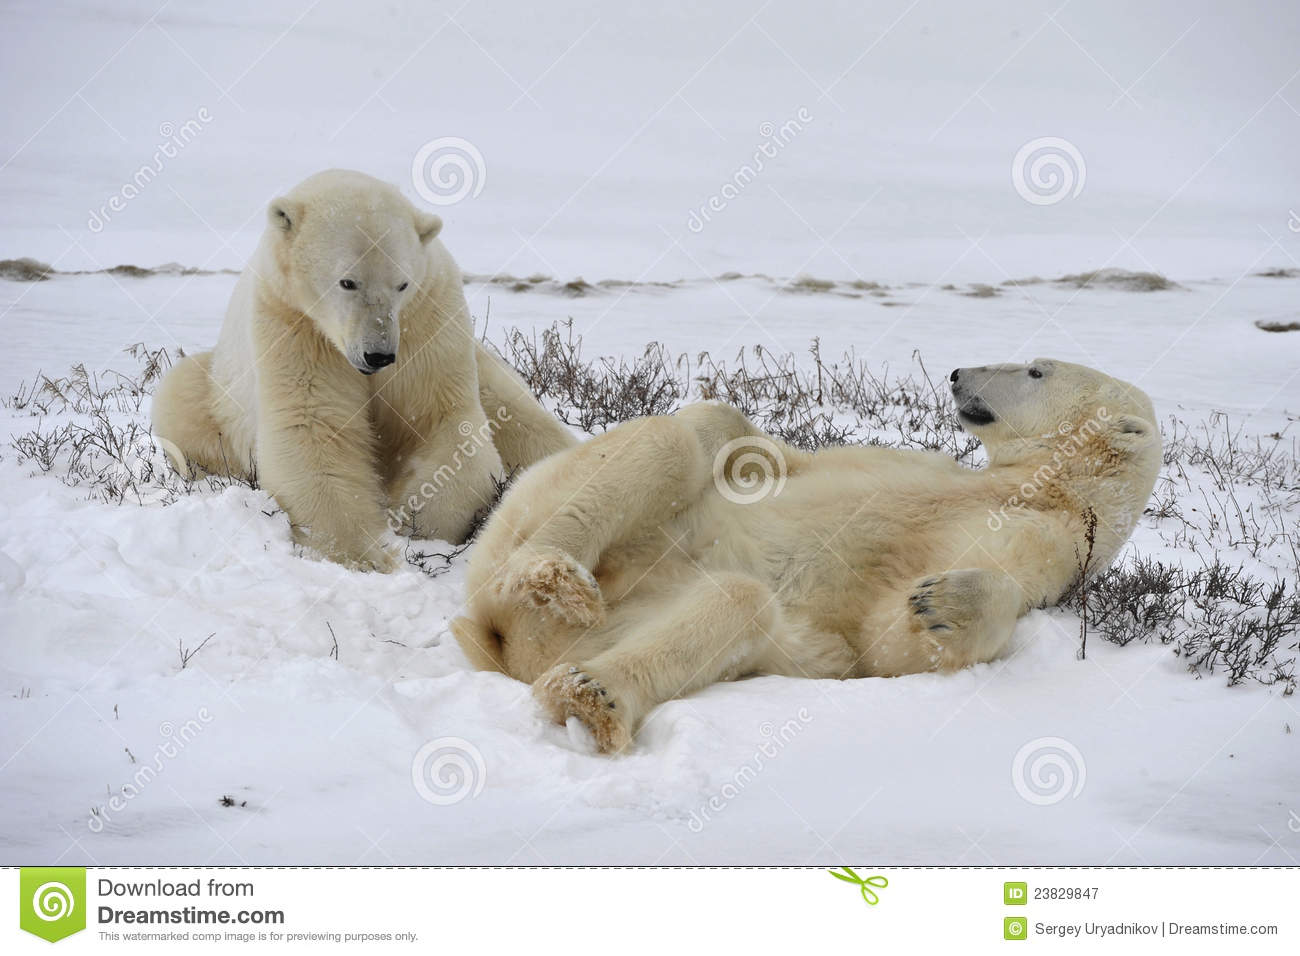 Playfool d ours blancs.